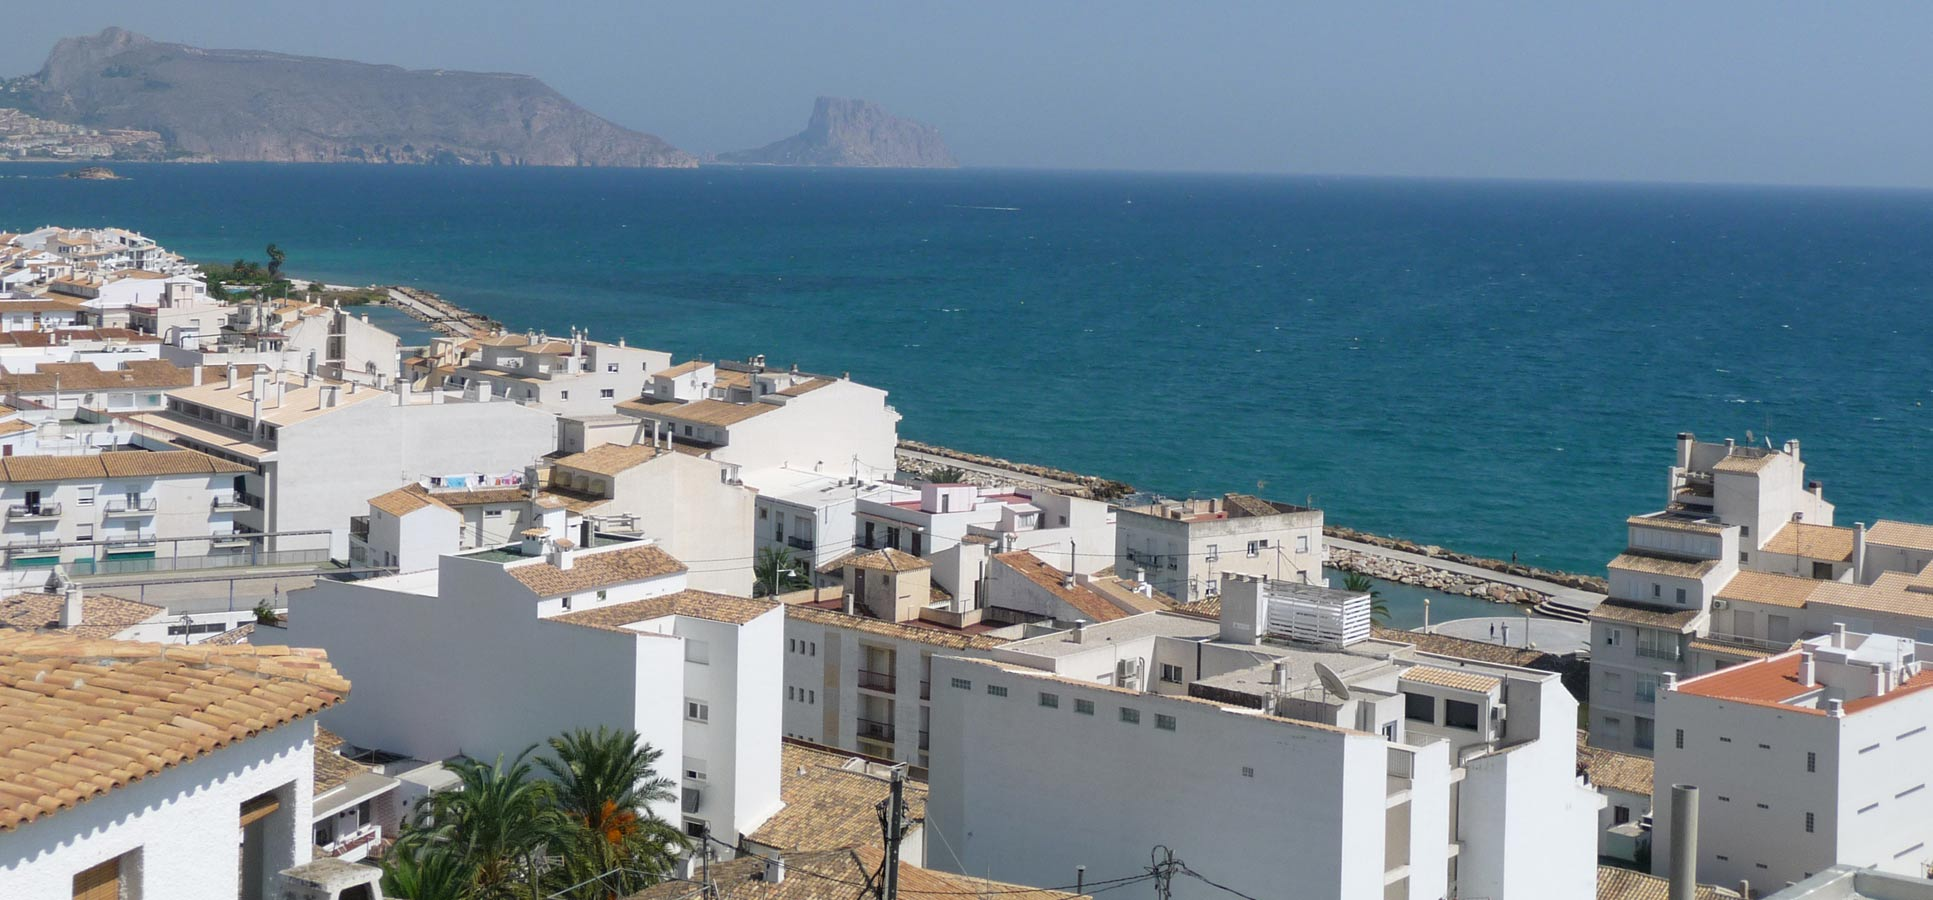 Travel Jimmy travel reviews Altea Spain